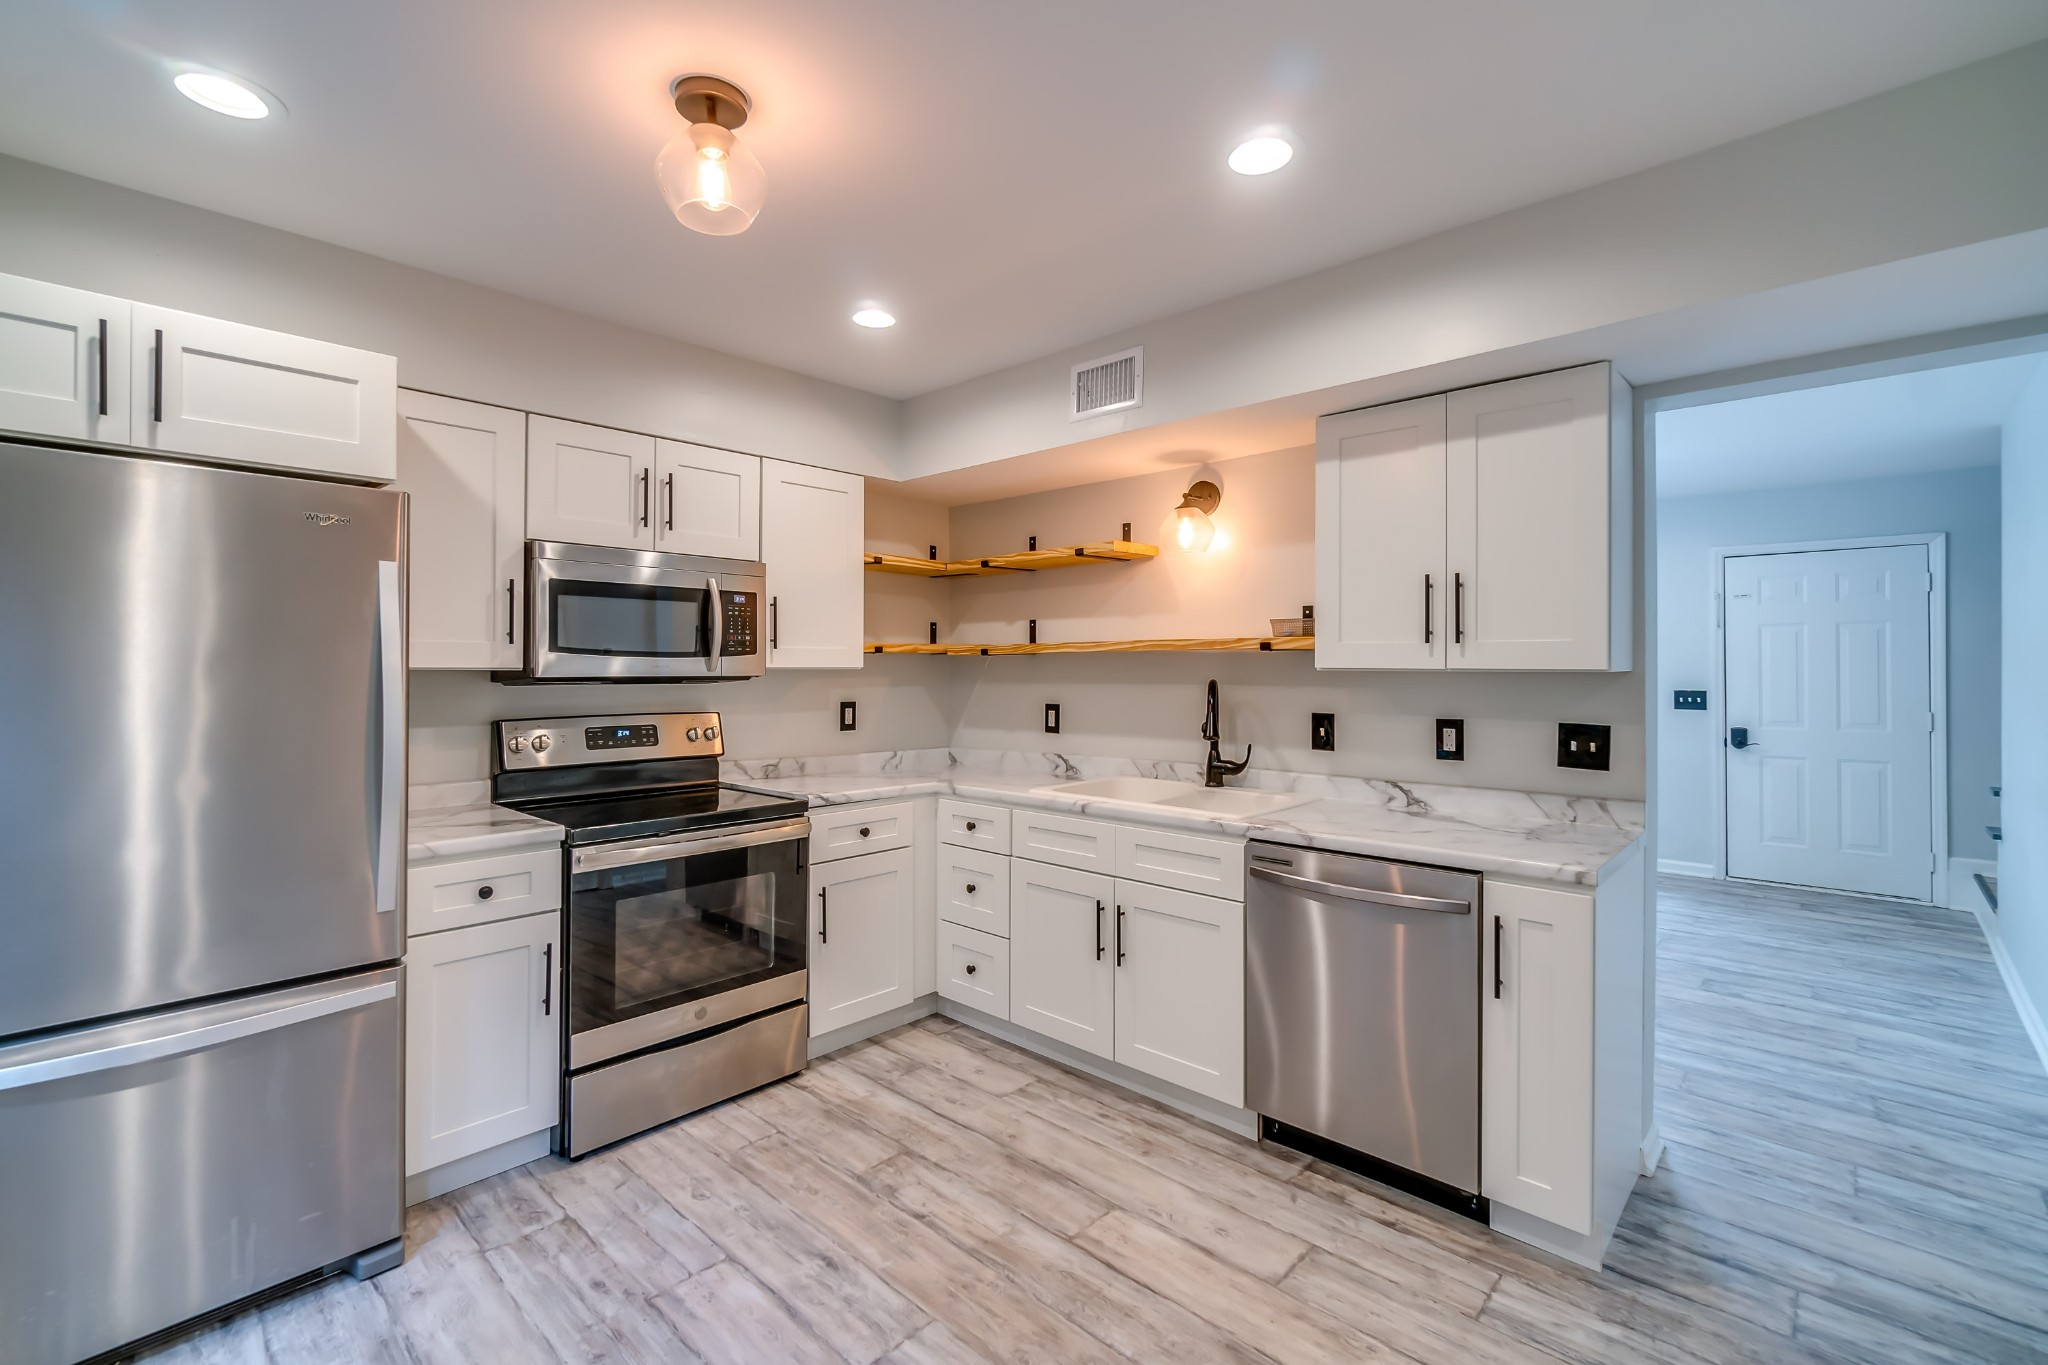 Renovated townhome in fast growing area! Great location,15 minutes from downtown Nashville and airport. Fenced in backyard, patio, updated kitchen, new windows, HVAC less than 3 years old, no HOA! Could be used as a rental. Property is vacant - sold AS IS.